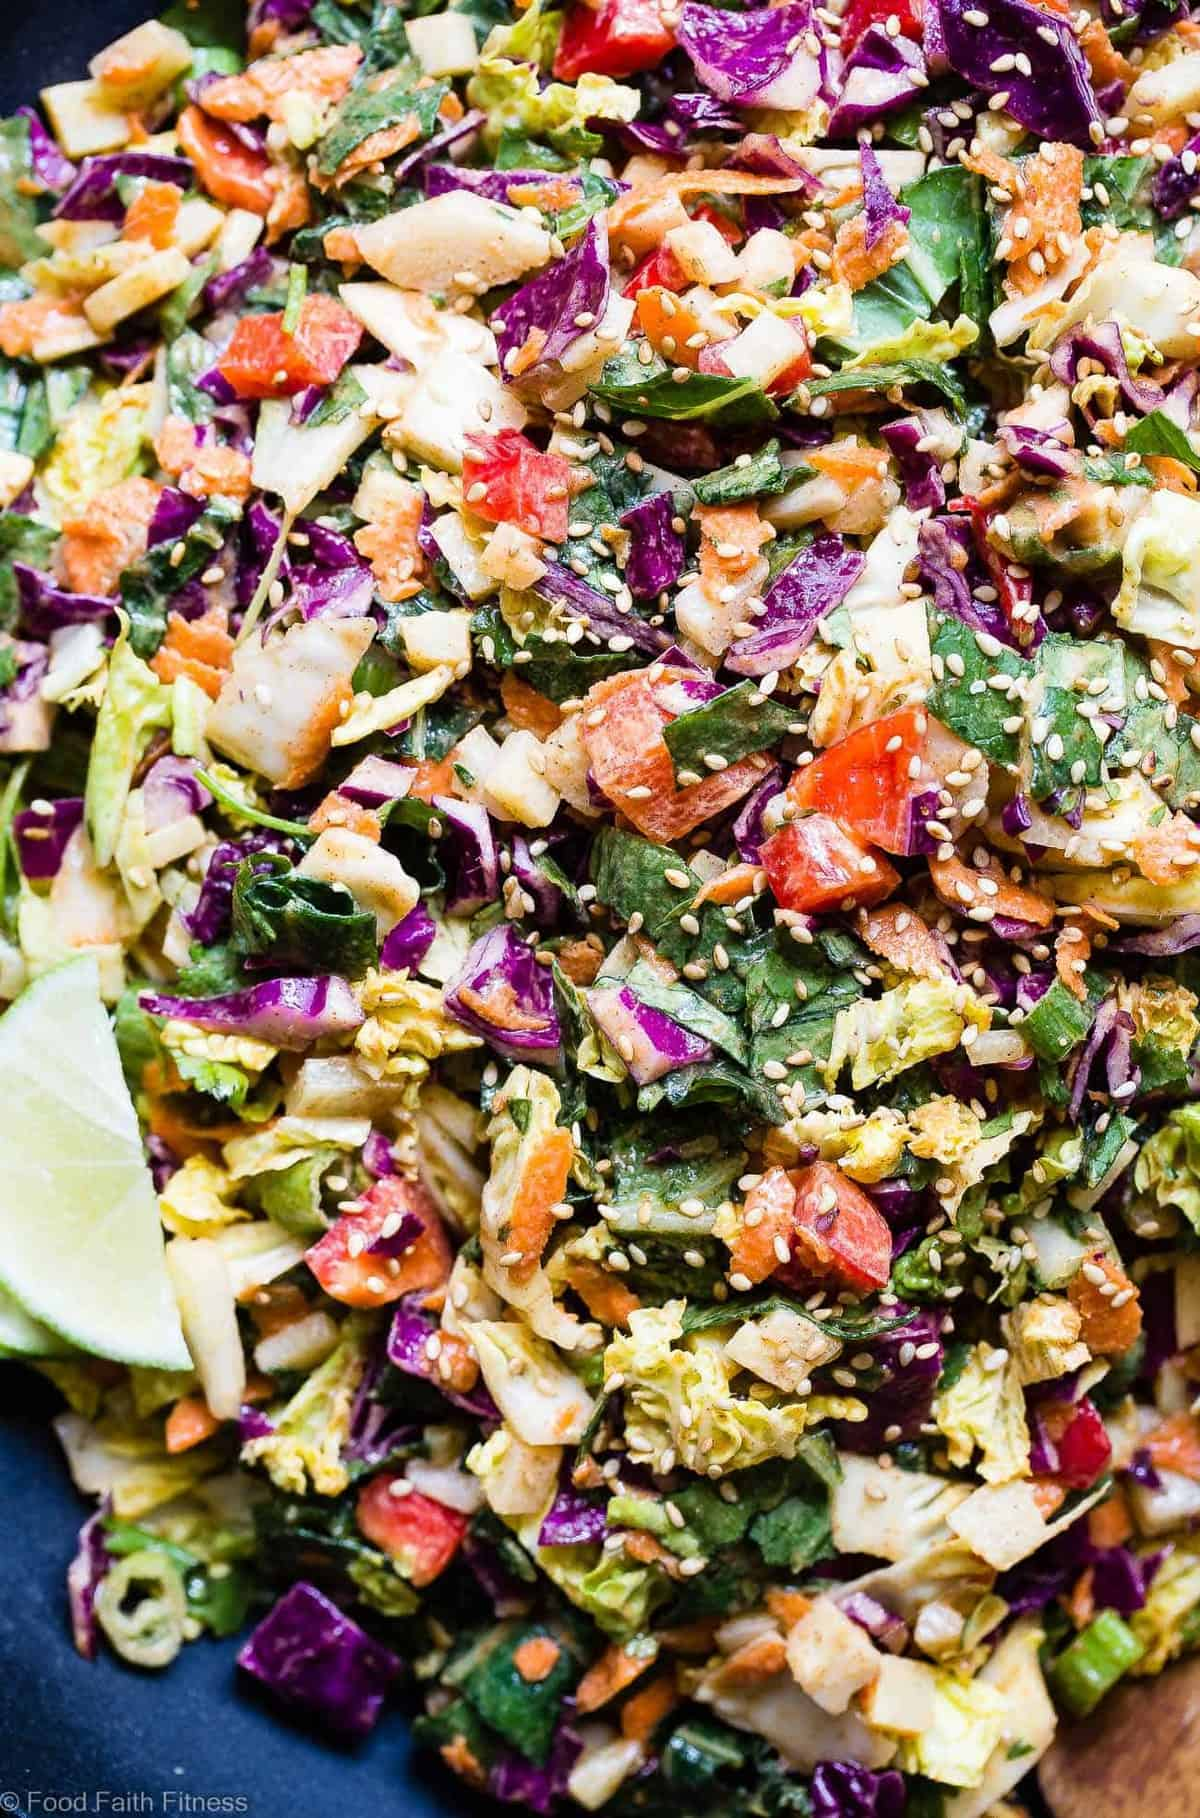 Healthy Oriental Coleslaw with Asian Dressing -This easy, saucy, paleo and vegan friendly coleslawis loaded with spicy-sweet flavors and the perfect crunchy! A great Summer side or topping that is gluten, grain and dairy free! | #Foodfaithfitness | #Glutenfree #Paleo #Vegan #Dairyfree #Coleslaw